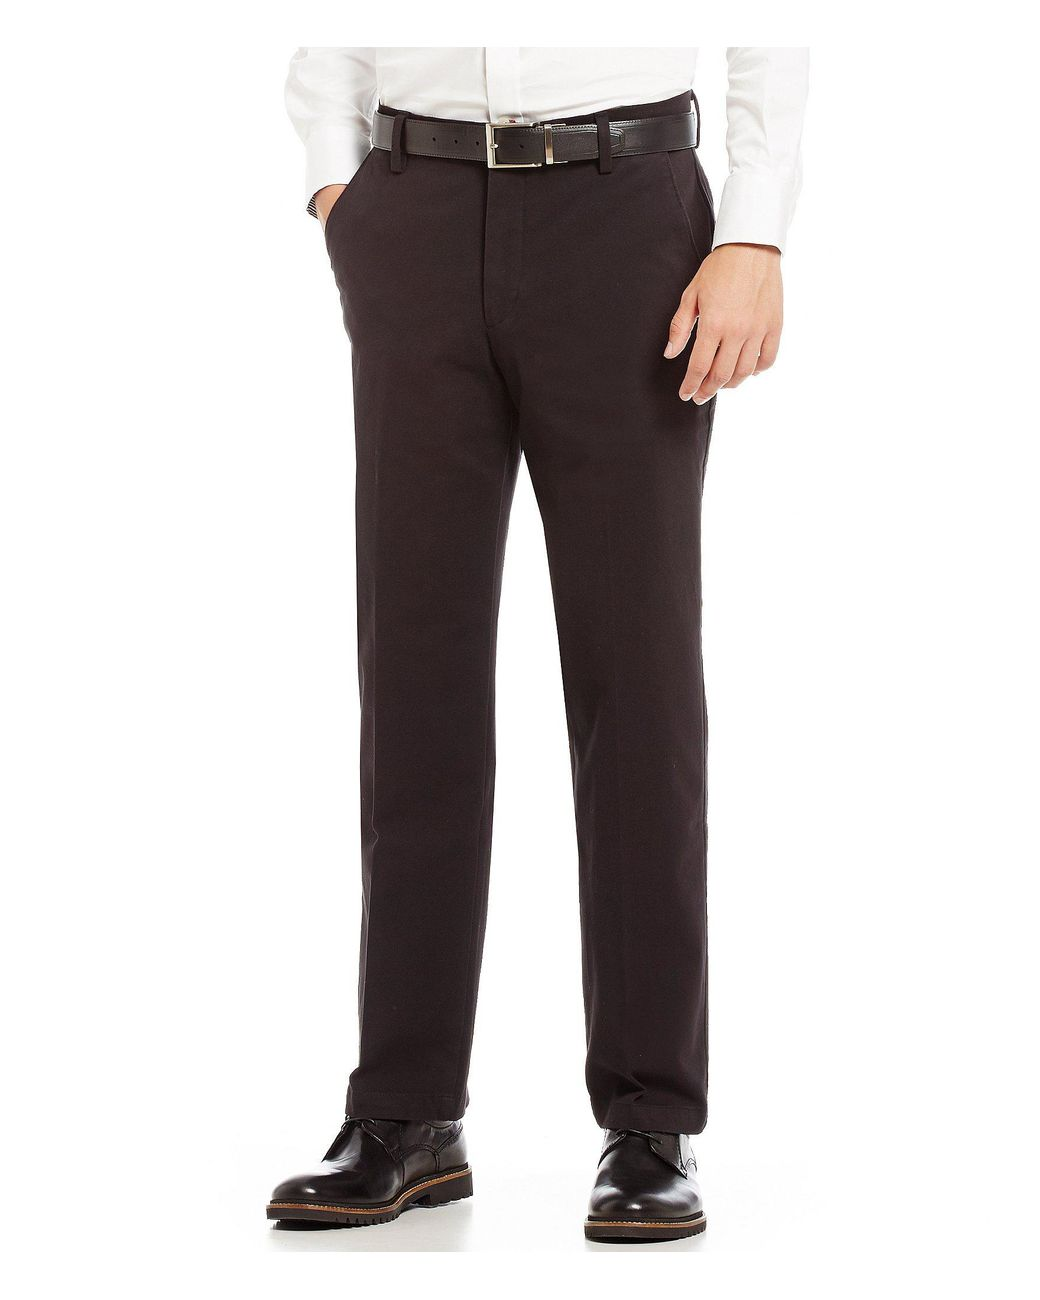 e6e48f775fc043 Dockers Docker's 360 Flex Waistband Refined Straight Fit Chino Flat Front  Pants in Natural for Men - Lyst